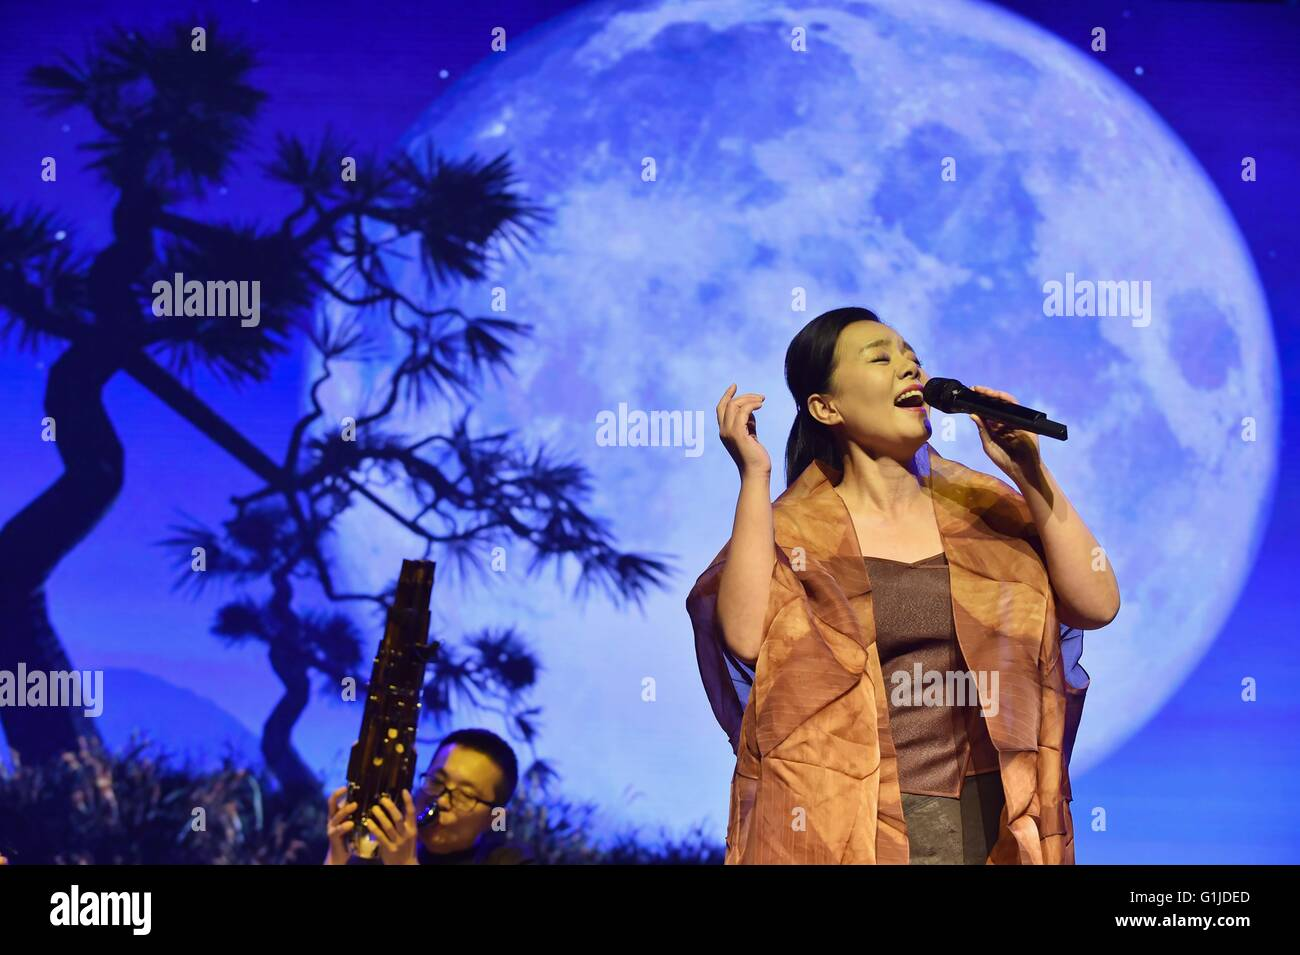 Beijing, China. 16th May, 2016. Singer Gong Linna sings the song 'A Tranquil Night' during the opening of - Stock Image